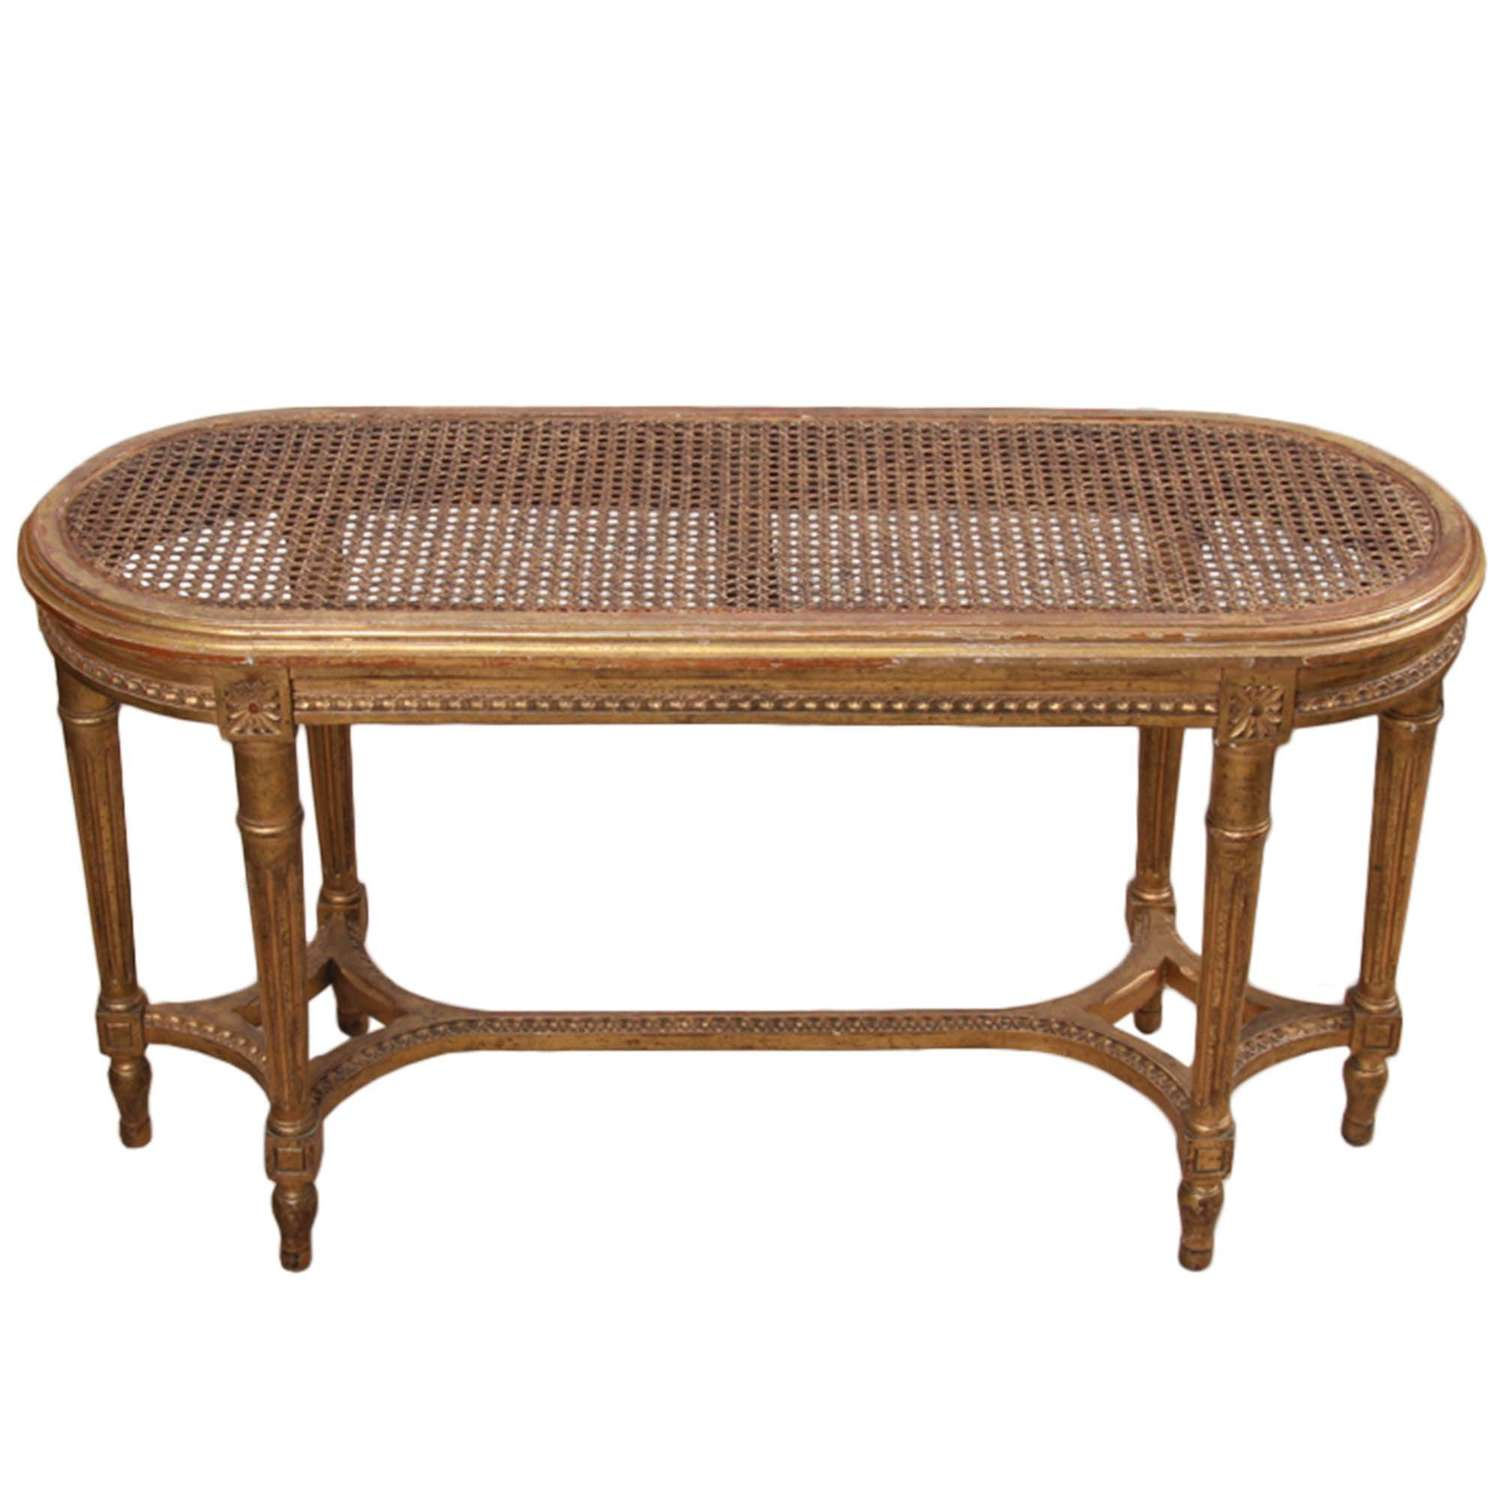 Small French Early 20th Century Cane and Giltwood Bench